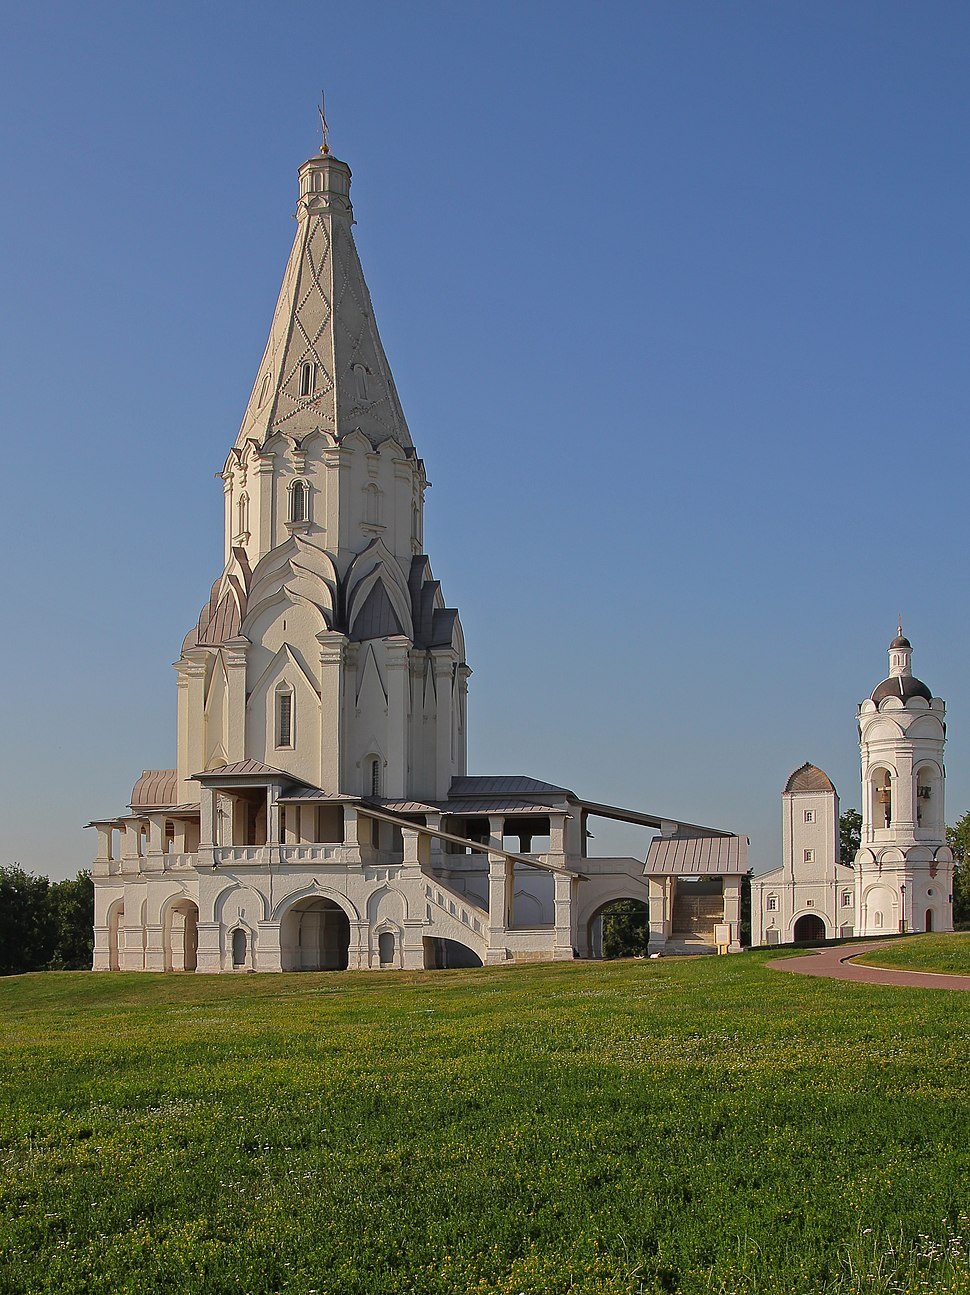 Kolomenskoe Ascension Church and the bell tower of the George Church